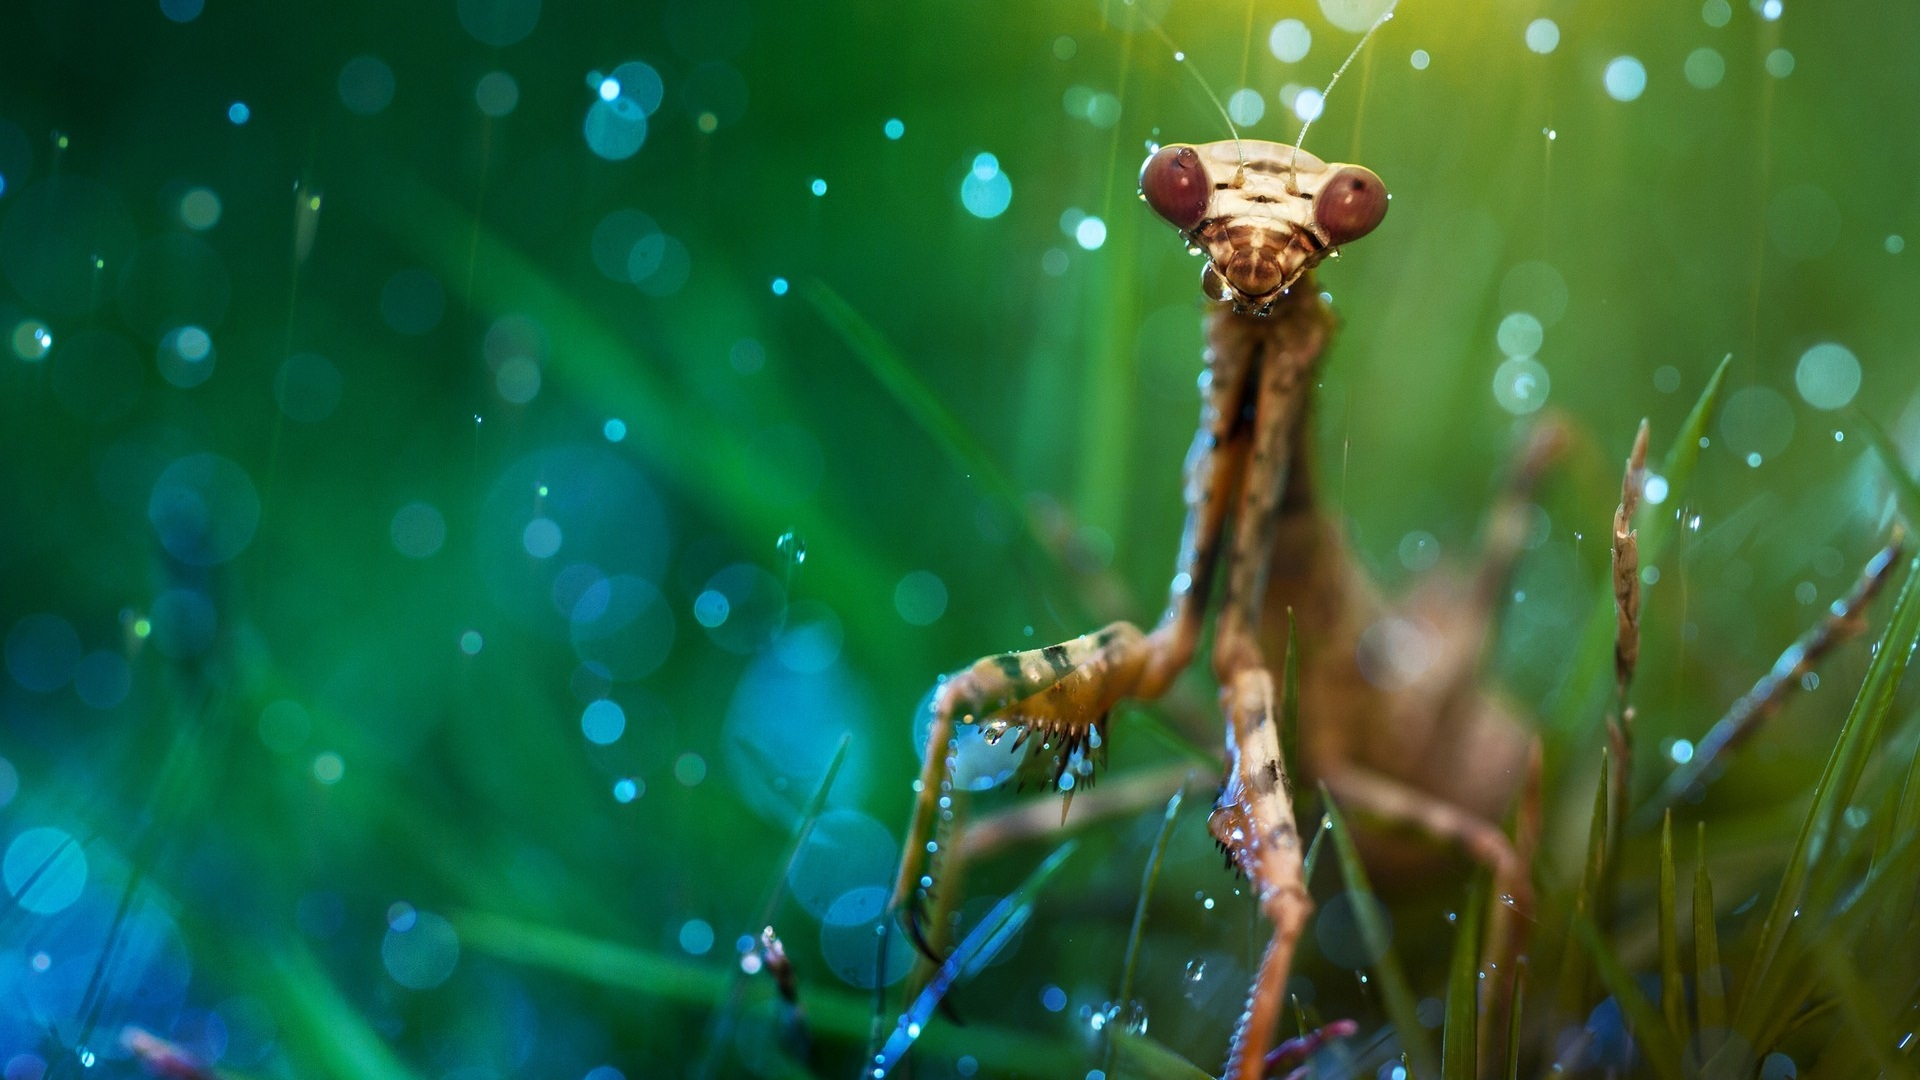 praying mantis wallpaper (3)